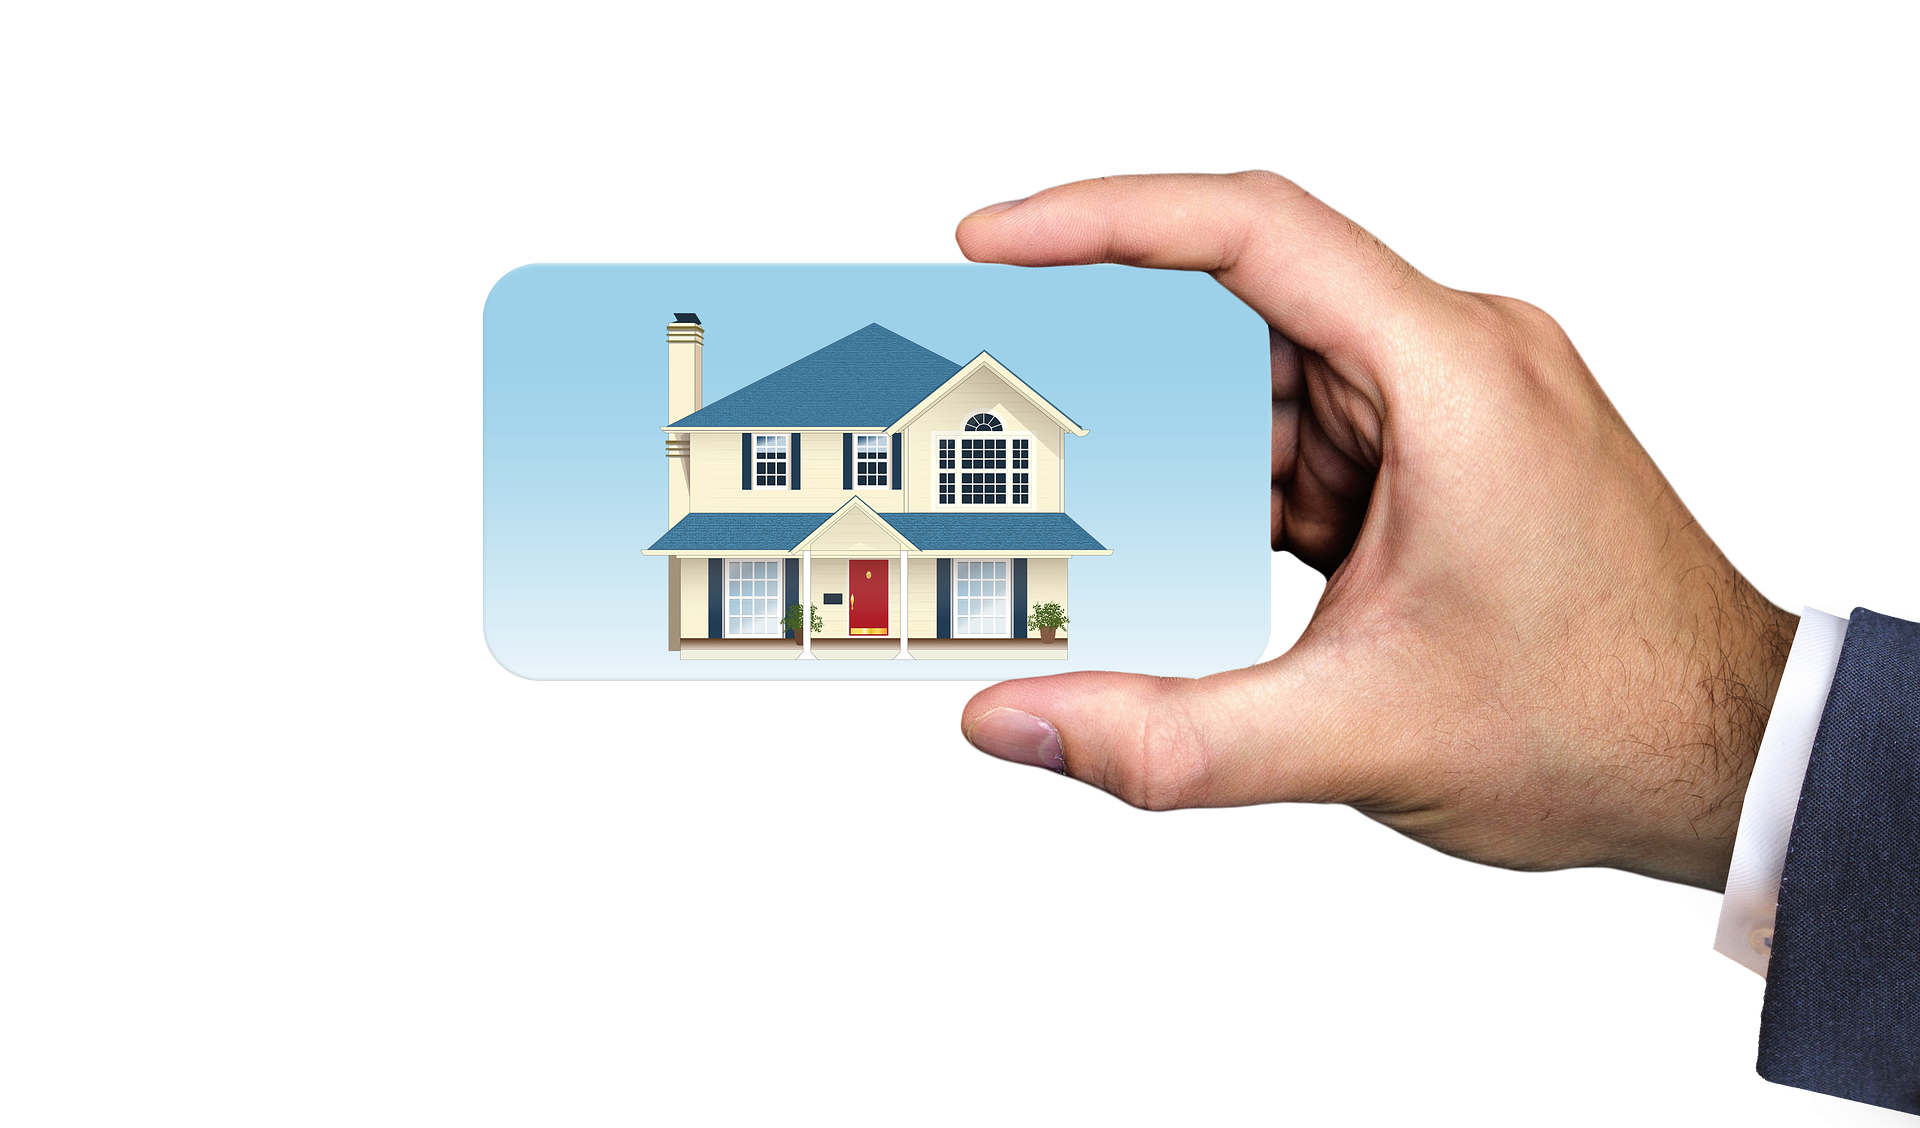 man holding mobile phone with image of house